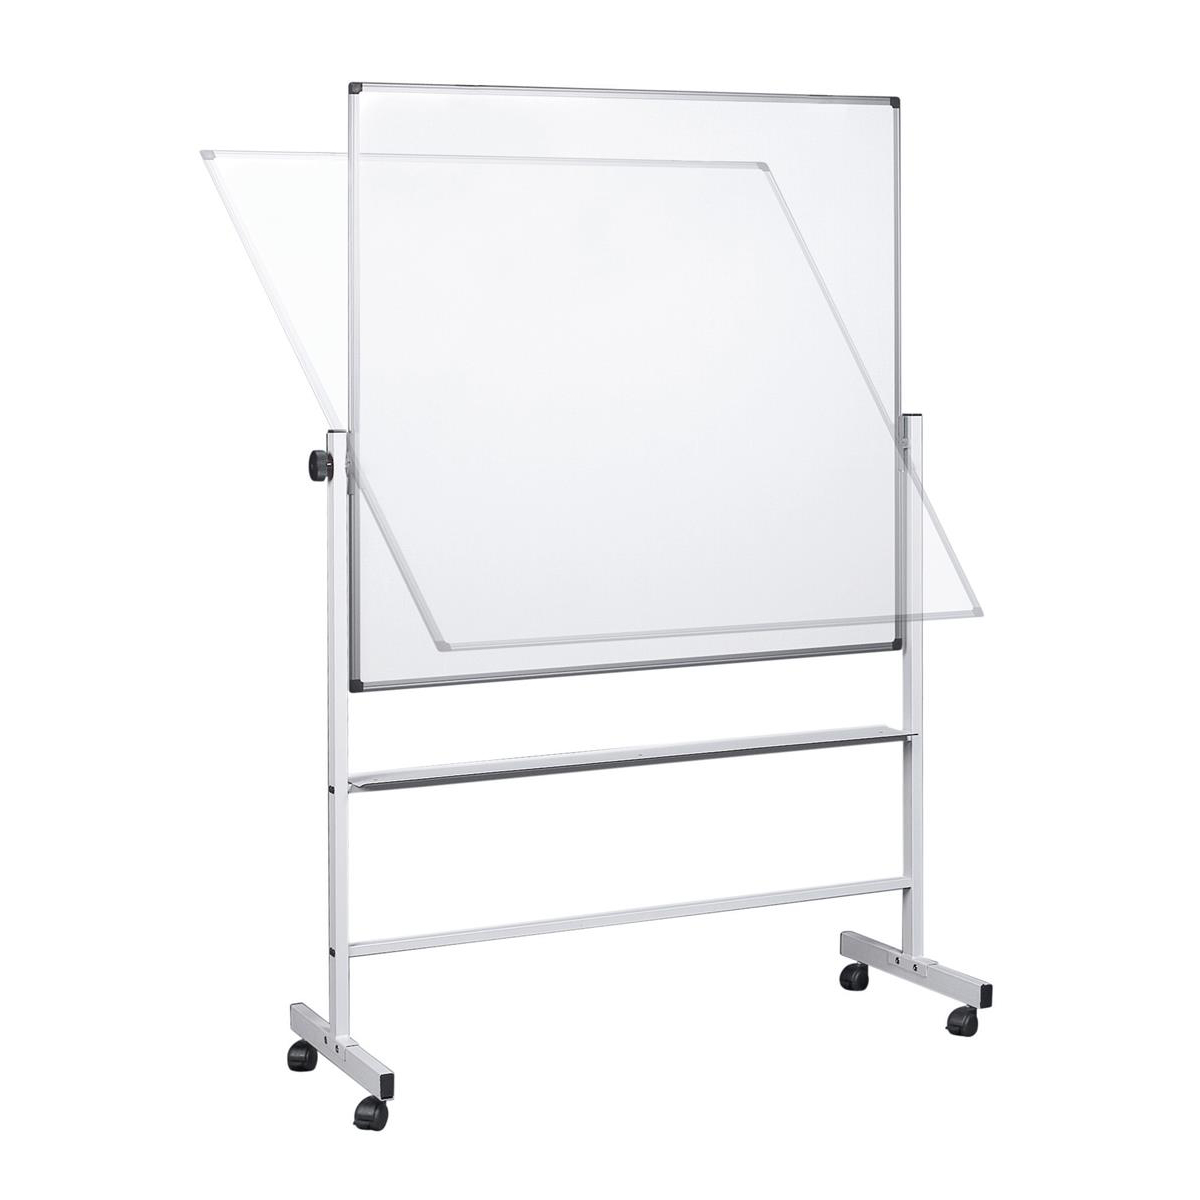 5 Star Office Revolver Whiteboard Magnetic Mobile 1500x1200mm